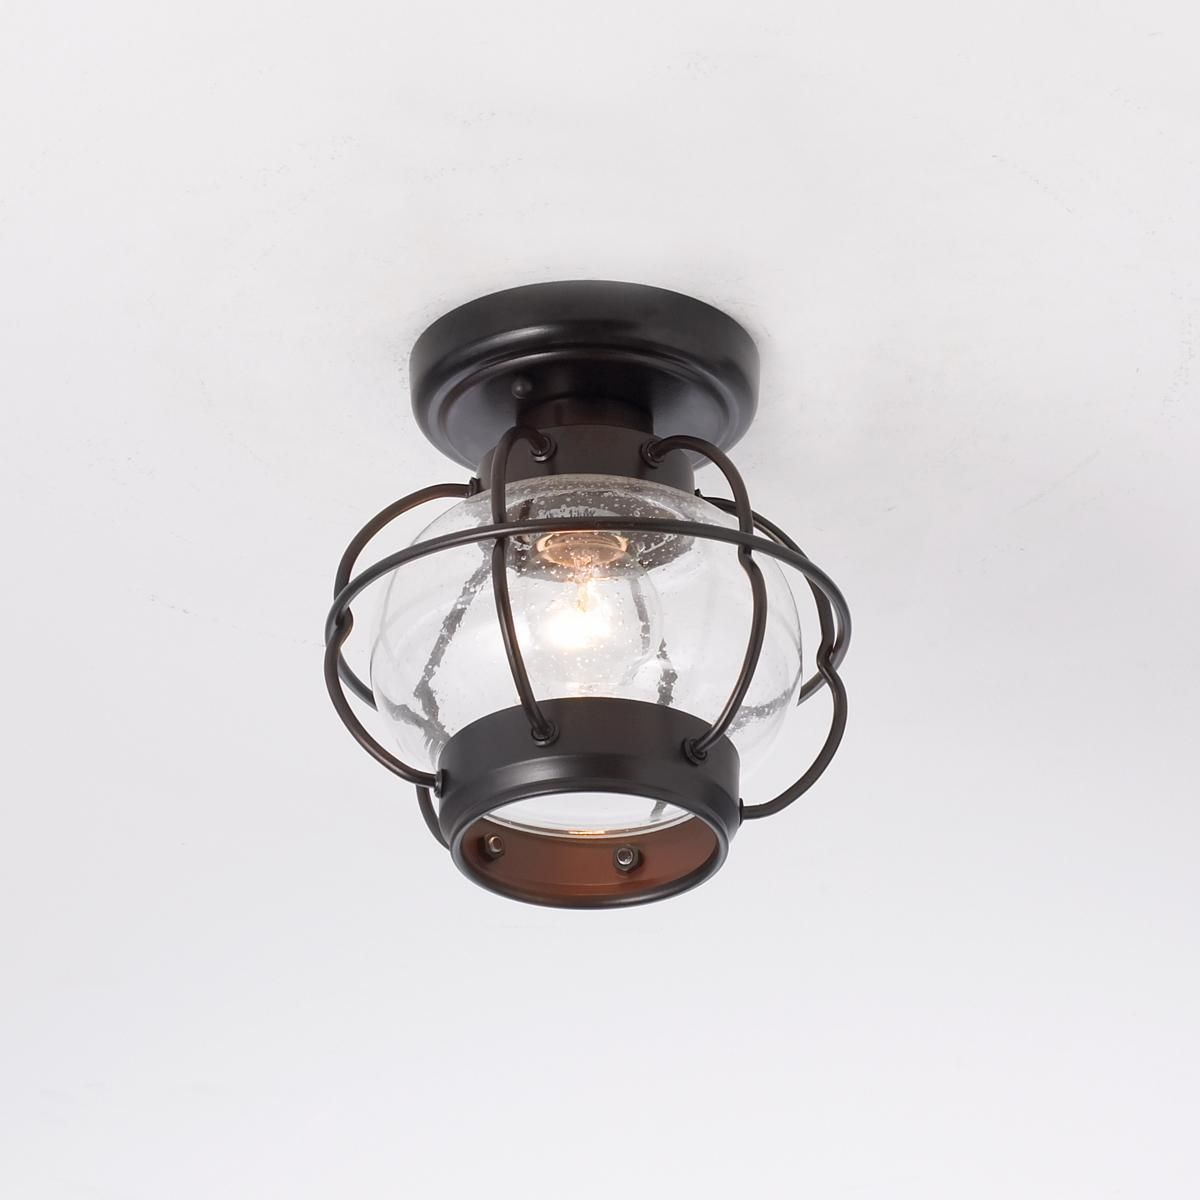 Nautical onion outdoor ceiling light from new england shingled cottages to colonial homes in the for Exterior ceiling light fixture